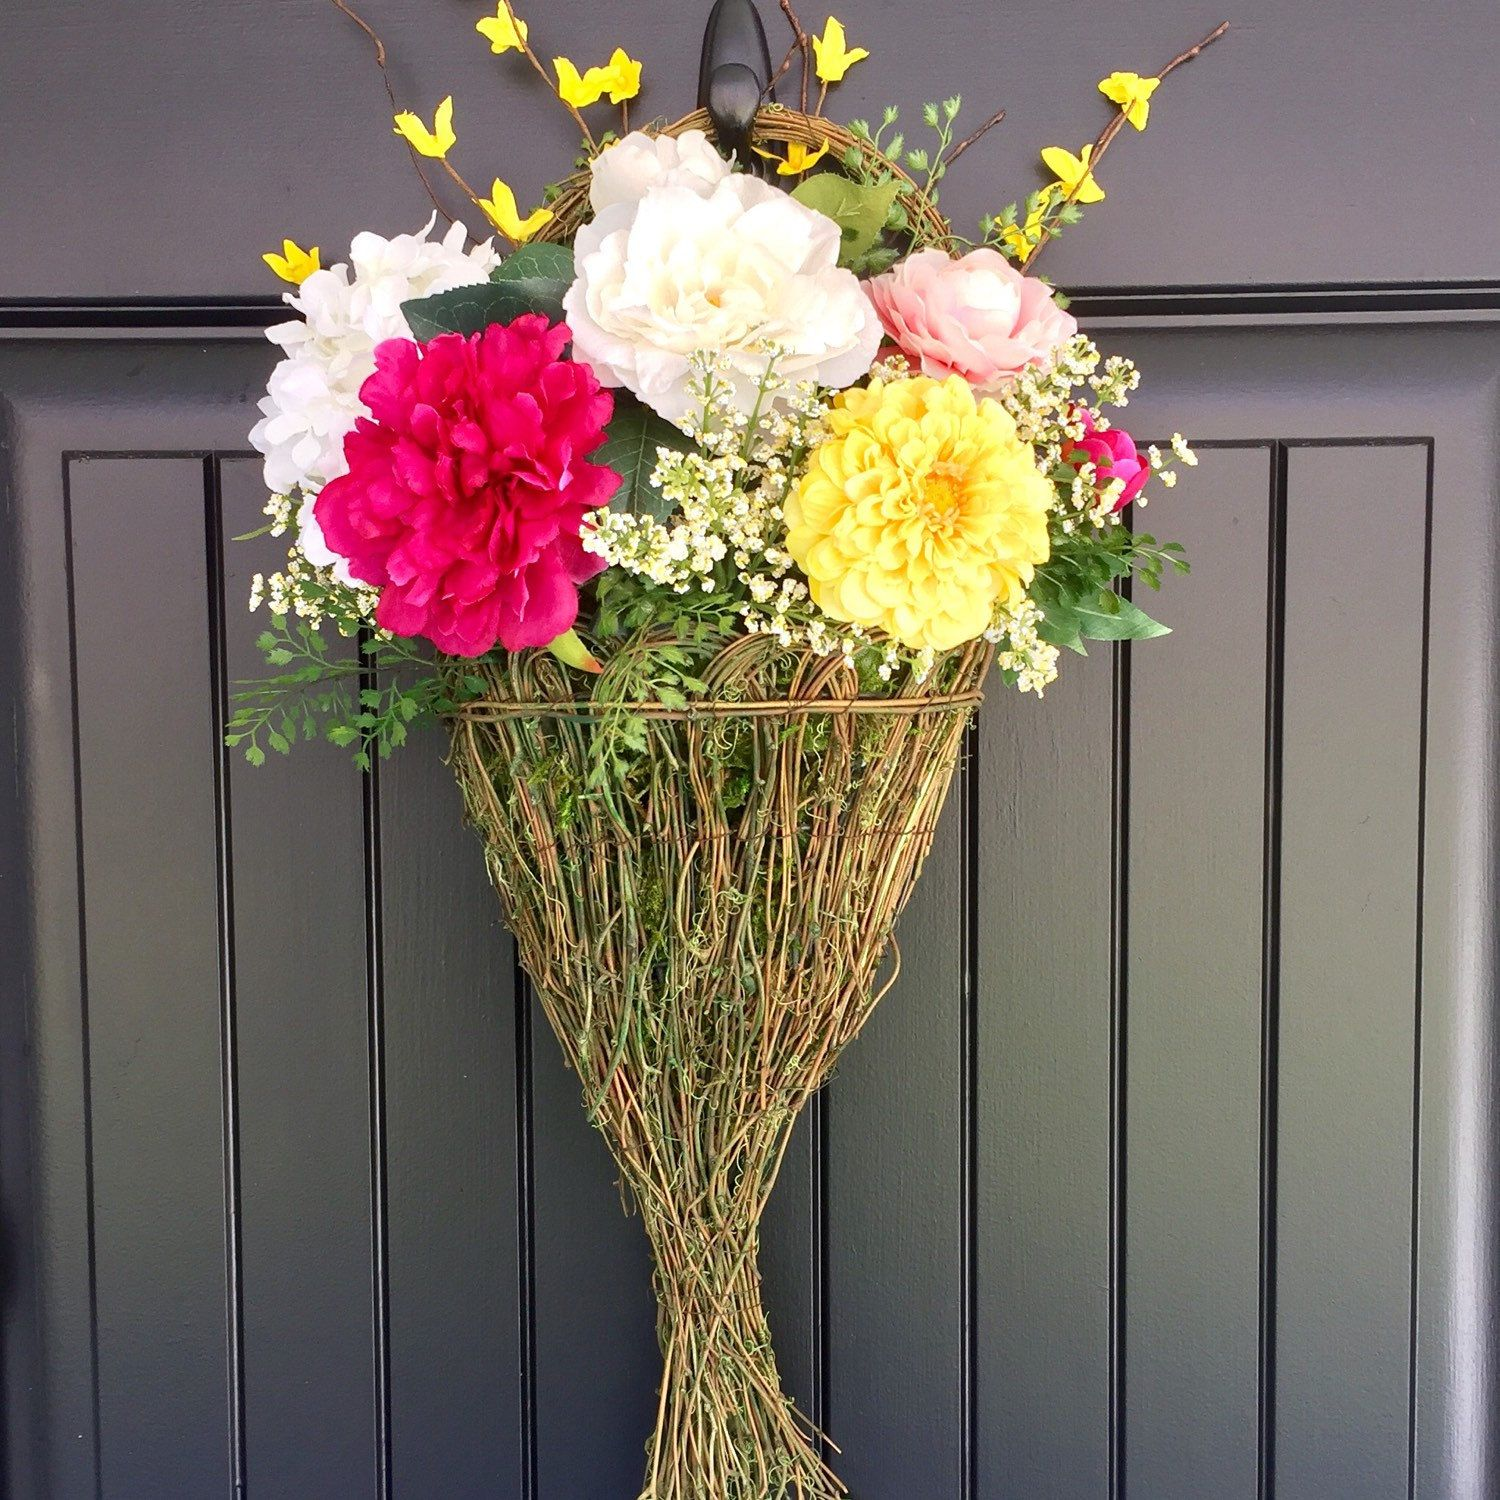 Natural Grapevine And Moss Hanging Basket Floral Arrangement, Front Door